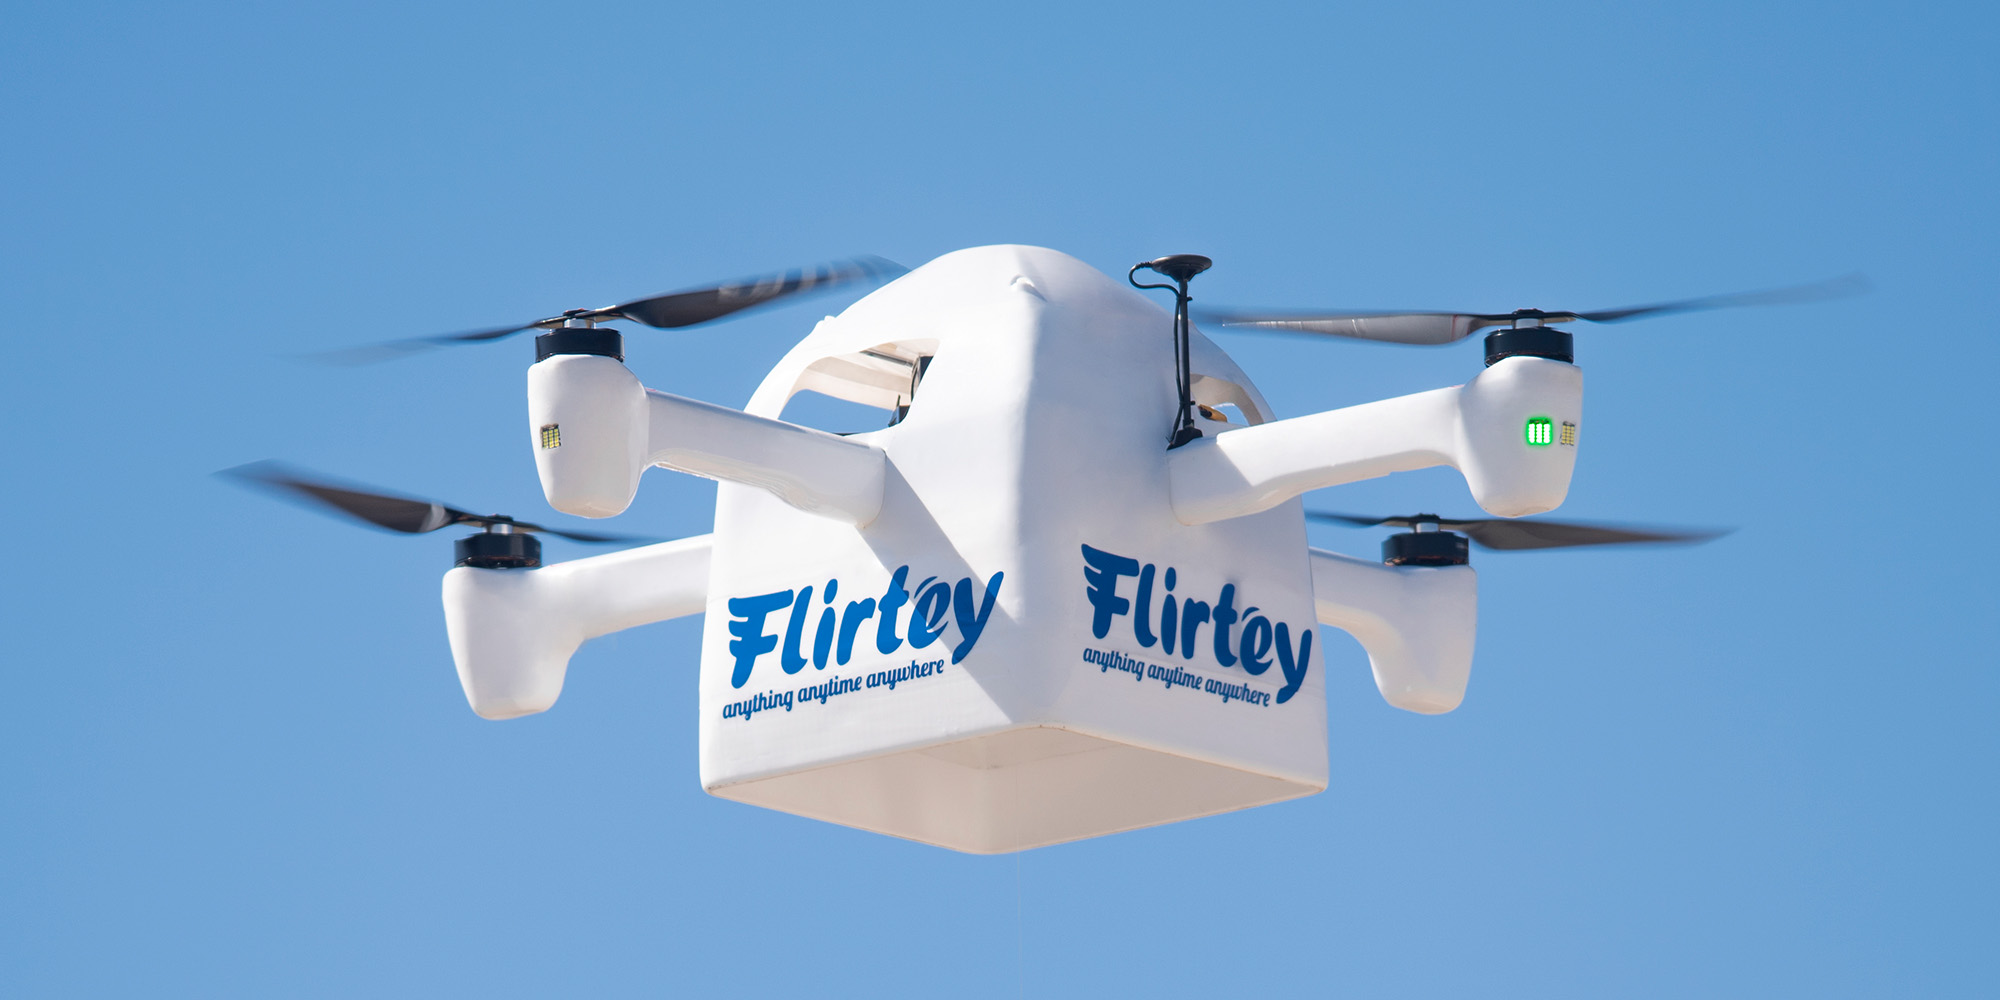 Flirtey releases its new Eagle delivery drone and ground station